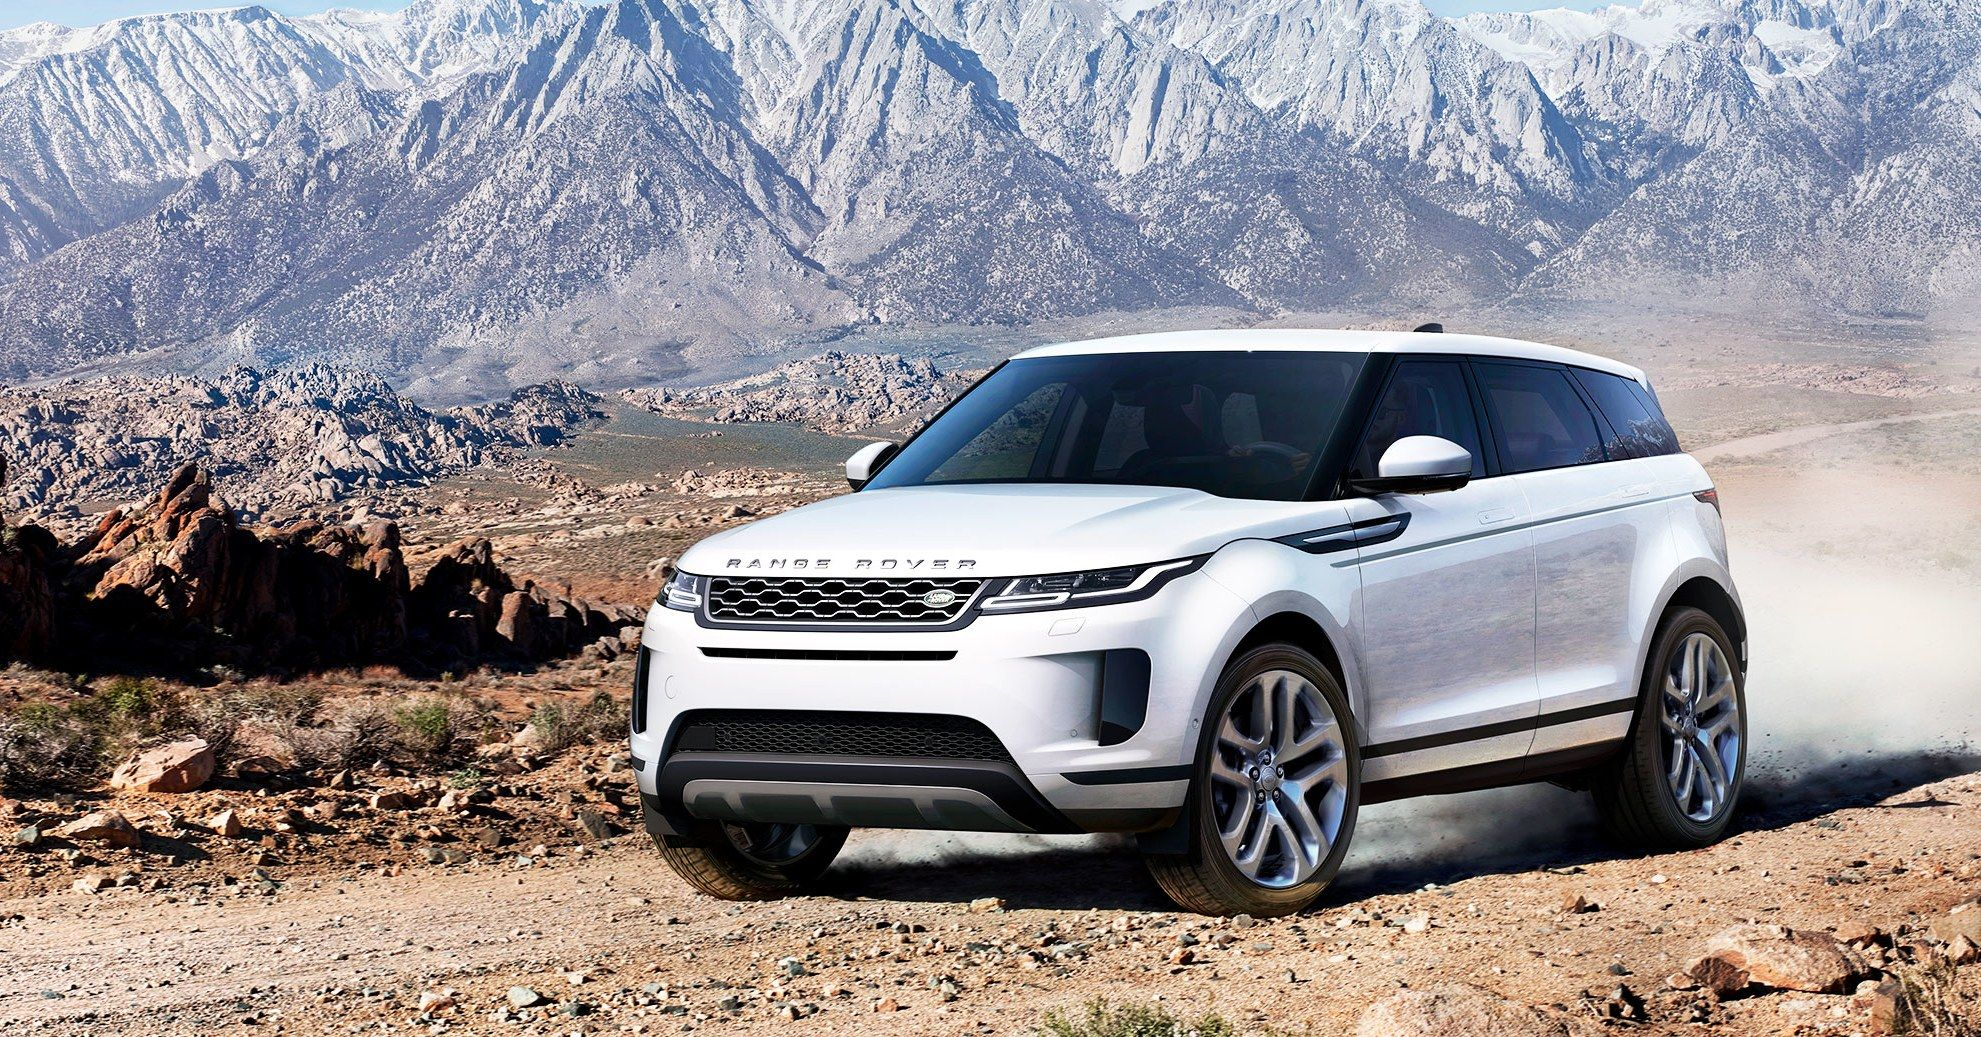 The Range Rover Evoque Is A Funny Sort Of Car The Sort Of Off